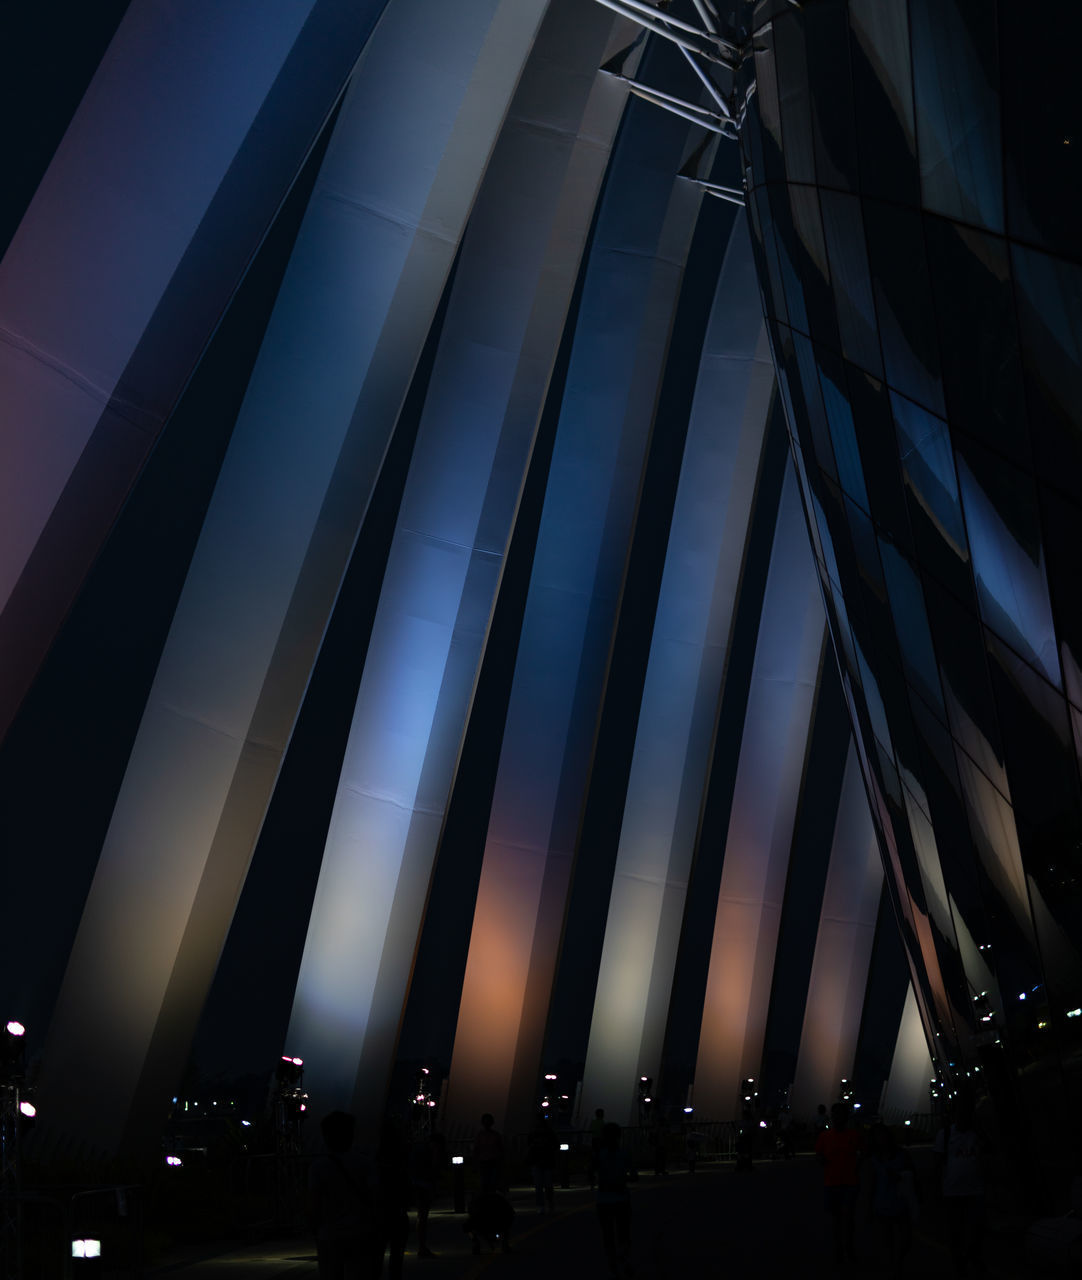 architecture, built structure, low angle view, building exterior, sky, no people, illuminated, glass - material, city, modern, pattern, nature, night, dusk, outdoors, side by side, building, silhouette, window, transportation